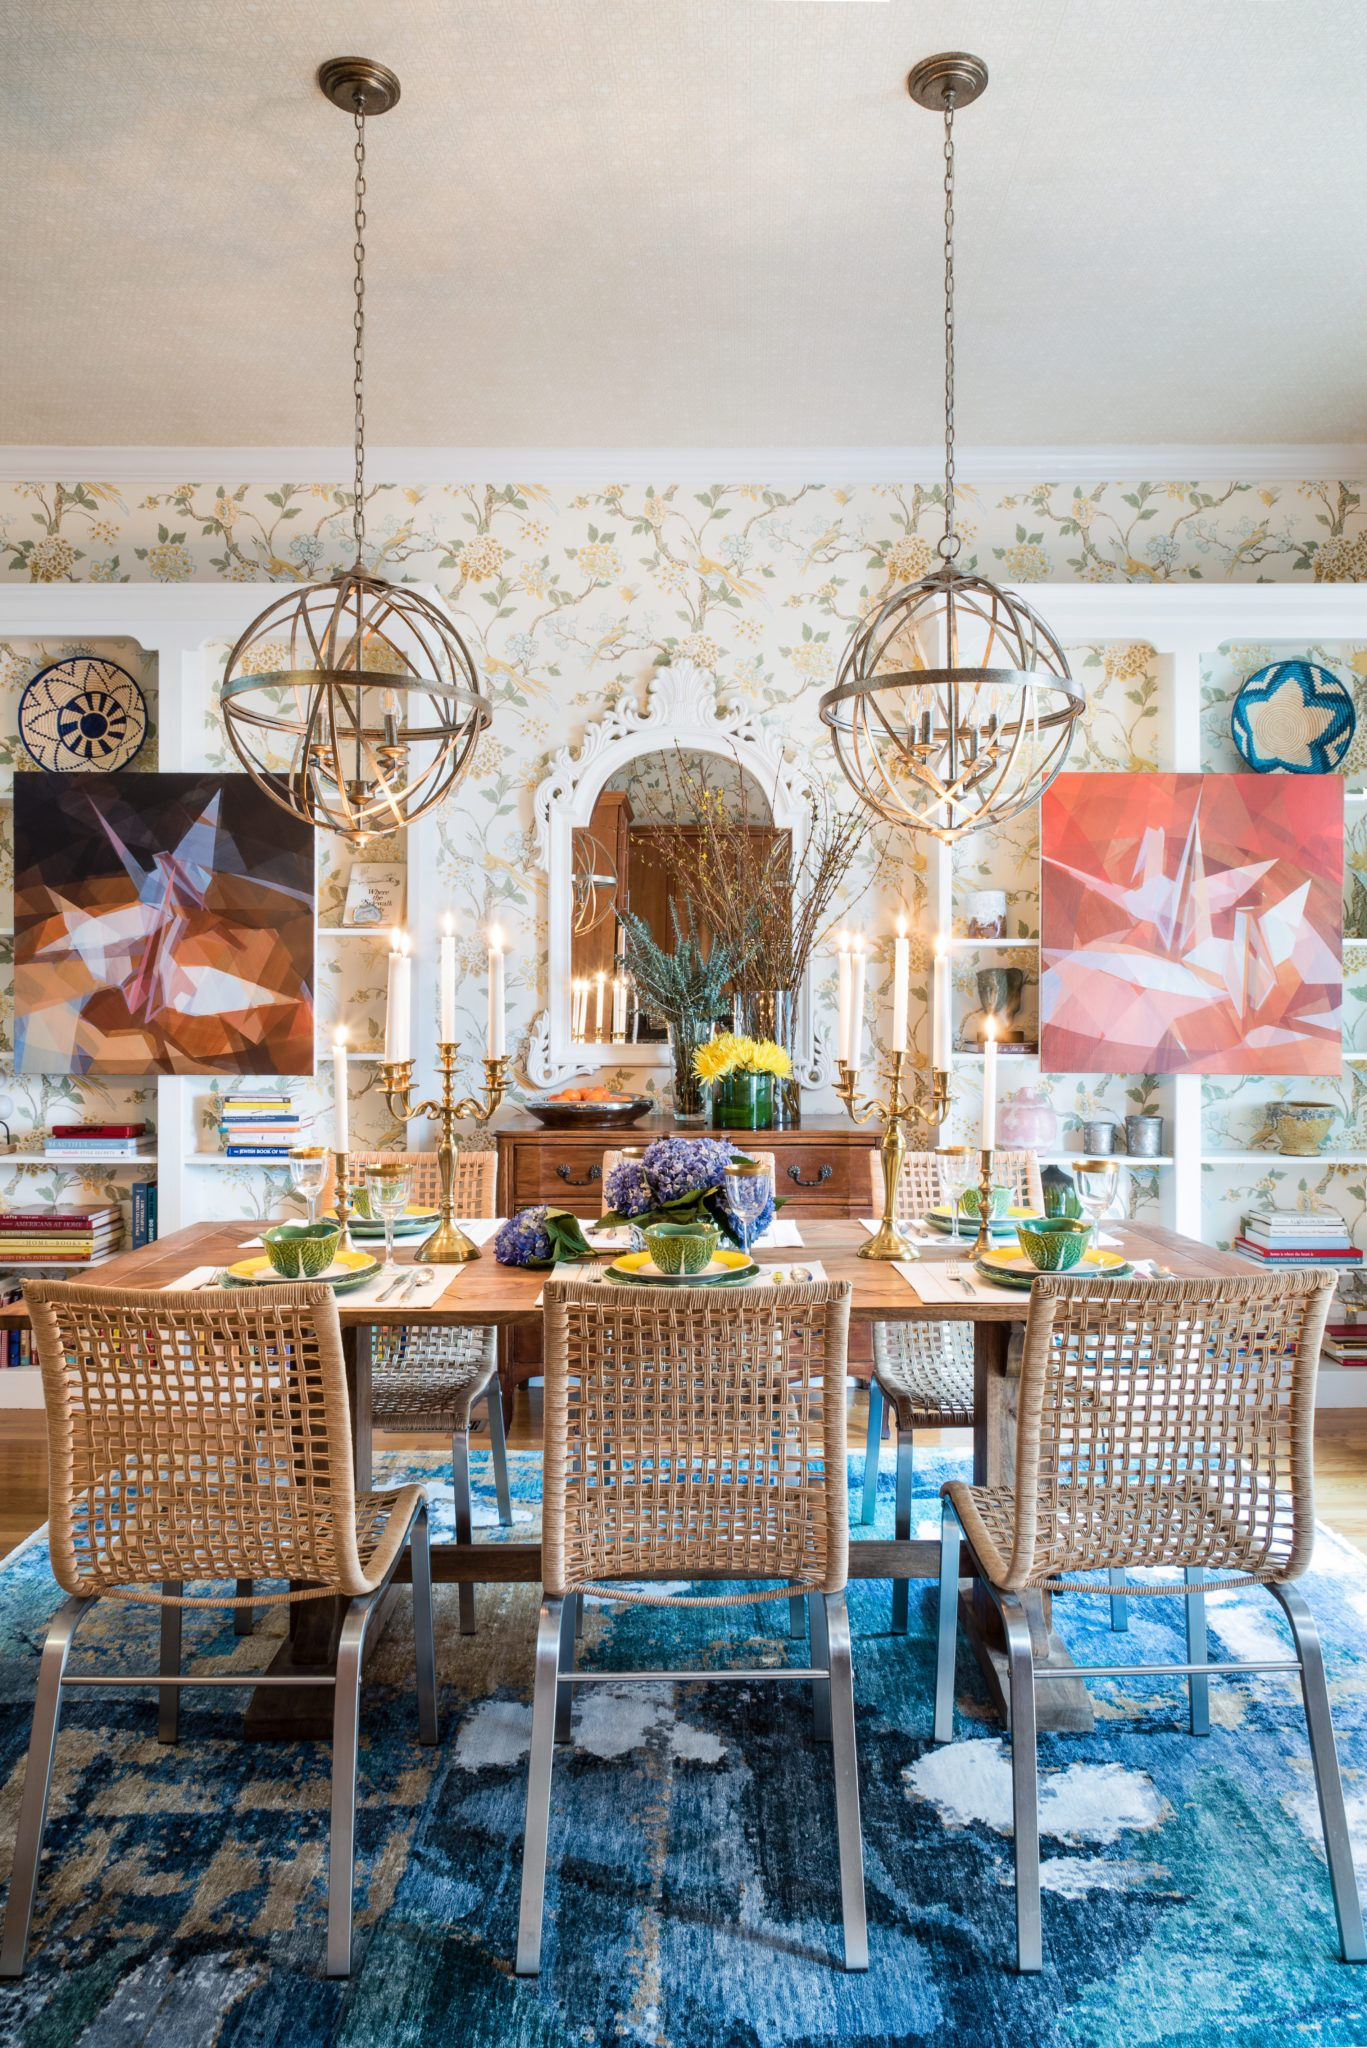 """2. Maximalism   With its heavily decorated rooms, patterned wallpapers, and rich furnishings, maximalist design will remain popular in thenew year, according to interior designerDane Austin, who says that maximalism """"recalls the feeling of Victorian-era rooms.""""  """"The style uses luxe layers and adornments, earthy tones, and a nod to traditional furnishings,"""" Austin says.""""Maximalism has become a trend as we move away from the industrial, reclaimed design that was once a necessity sparked by the downturned economy during the last recession. A decade later, we're in a much better place financially and our interiors reflect that. I love that you can layer a space with many seemingly disparate design elements in a way that feels cohesive and collected over time."""""""